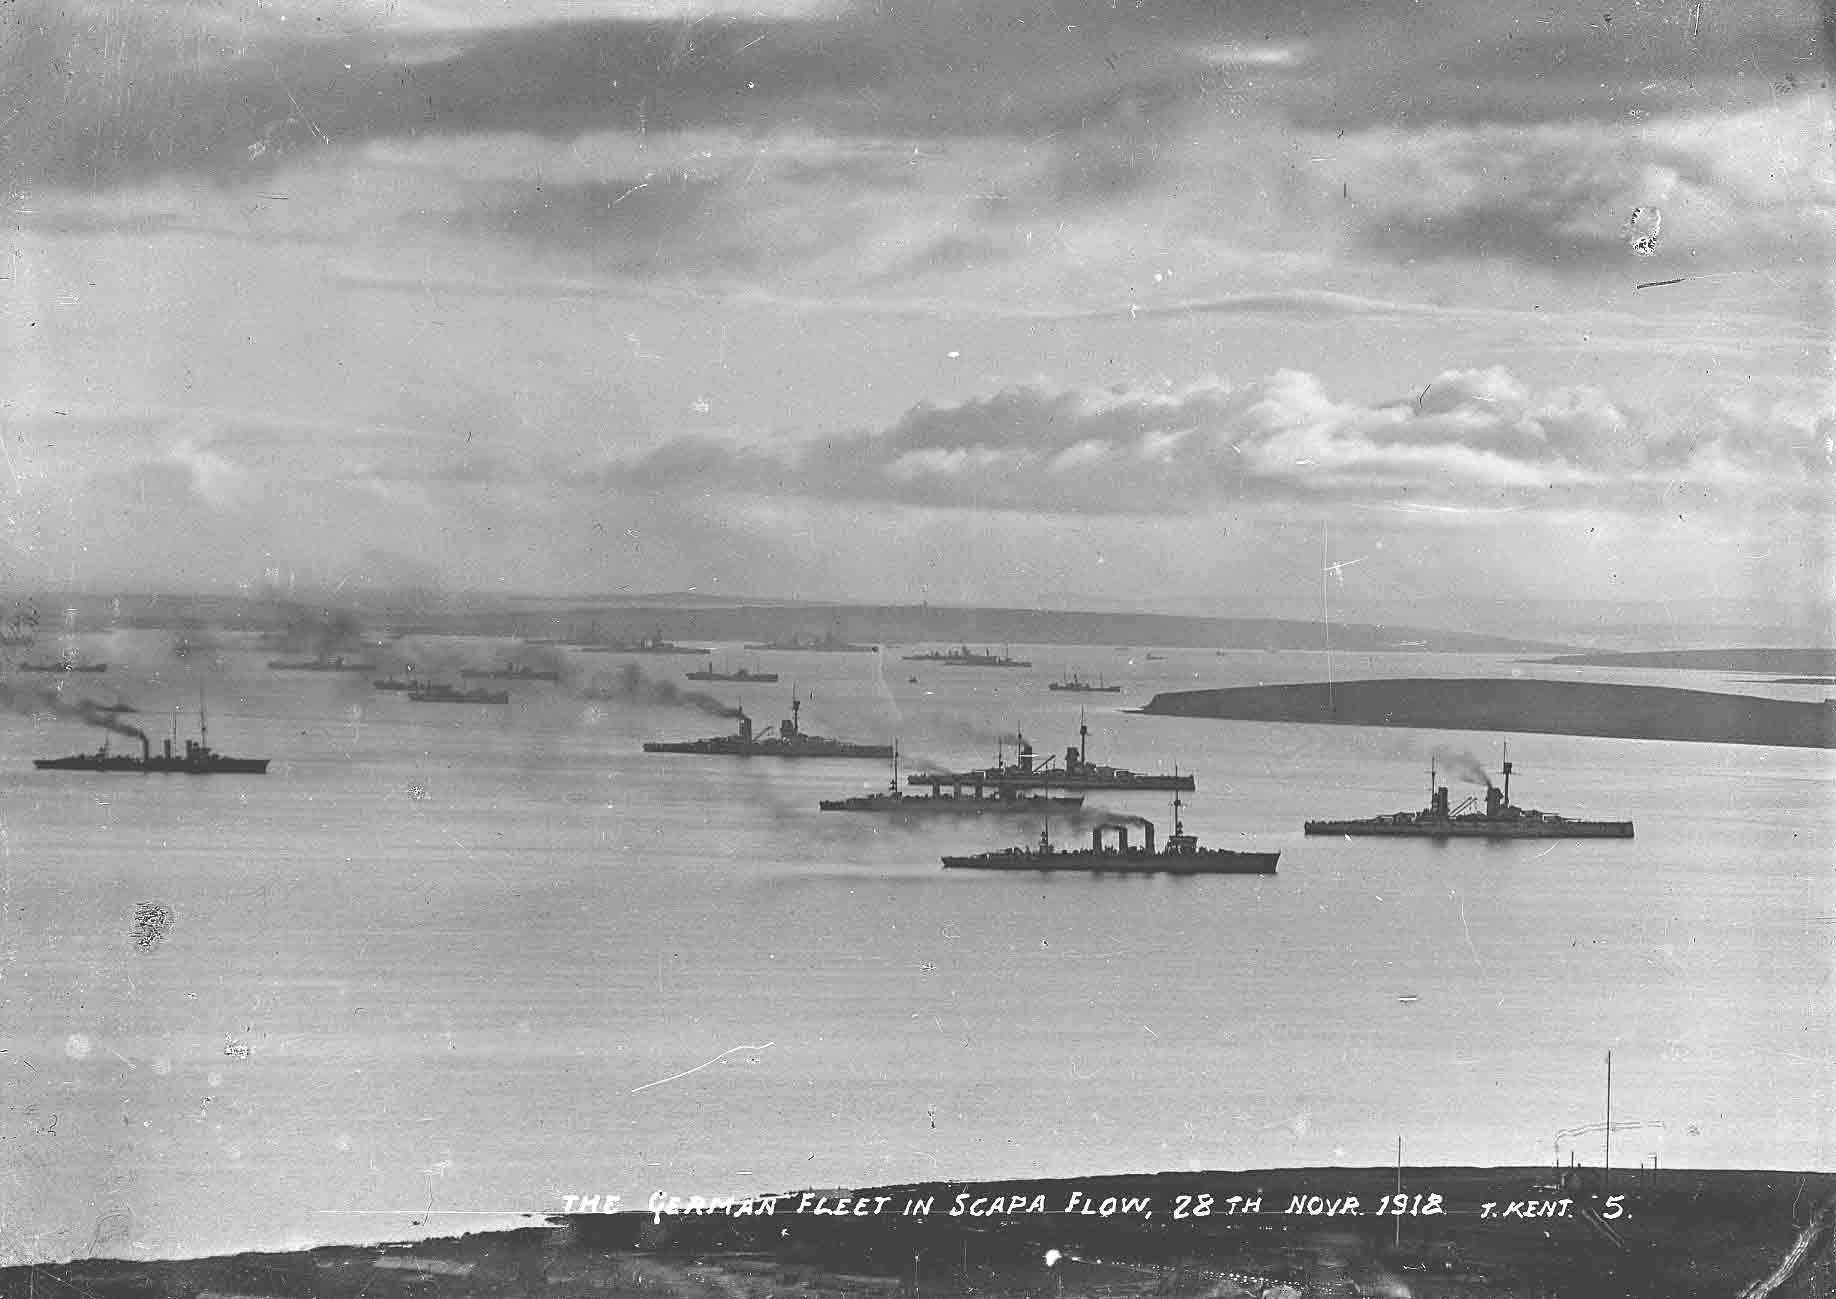 The German High Seas Fleet in Scapa Flow, Orkney - image courtesy of the Orkney Library and Archive